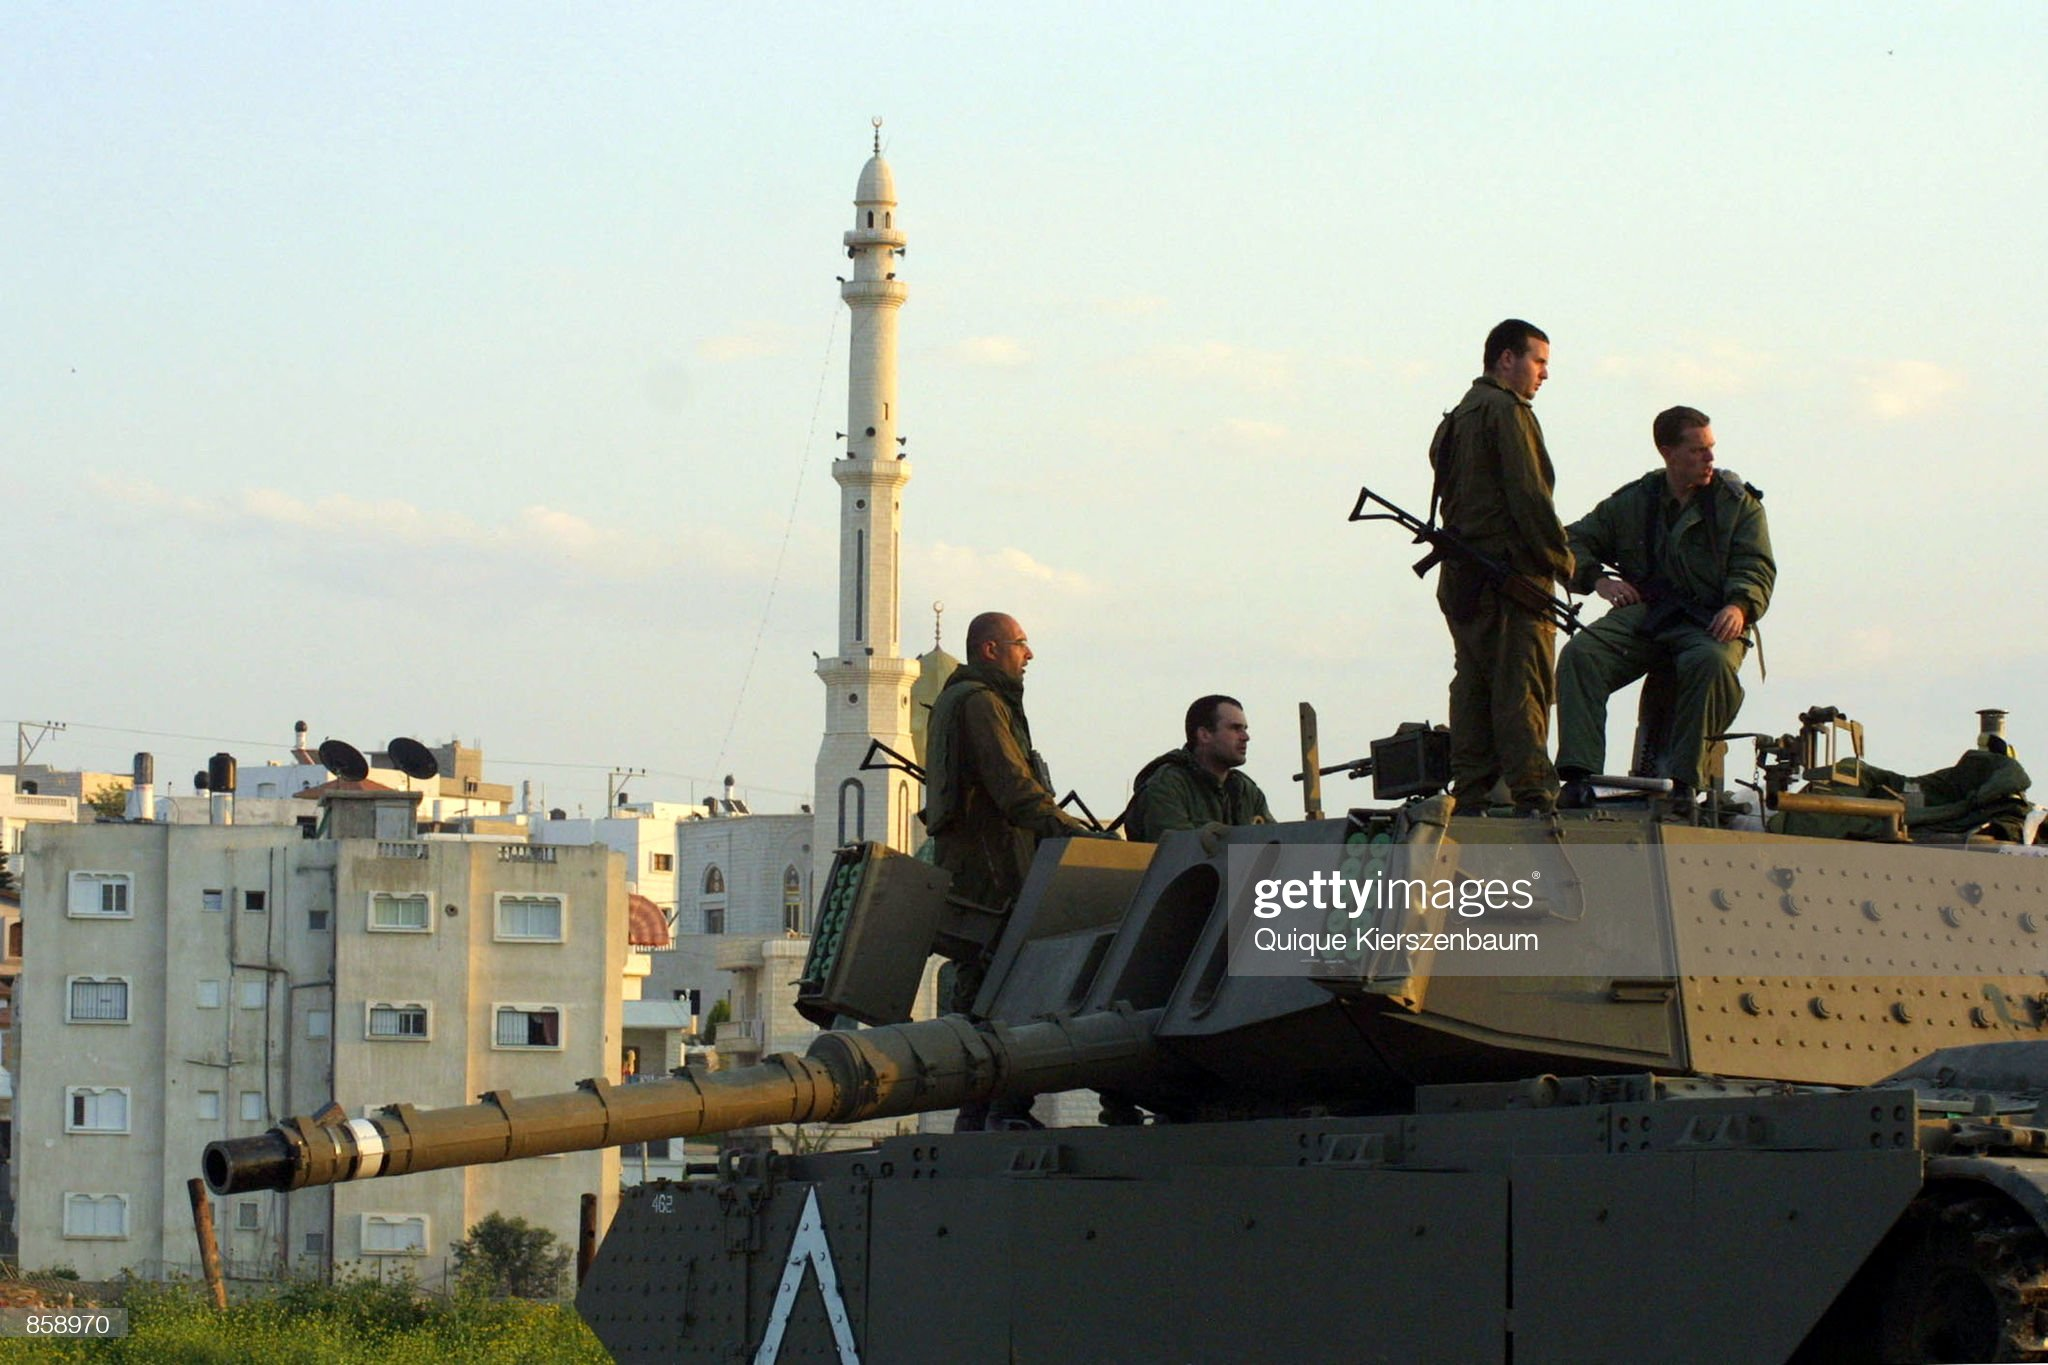 https://media.gettyimages.com/photos/israeli-troops-make-their-way-to-enter-the-palestinian-town-of-in-picture-id858970?s=2048x2048